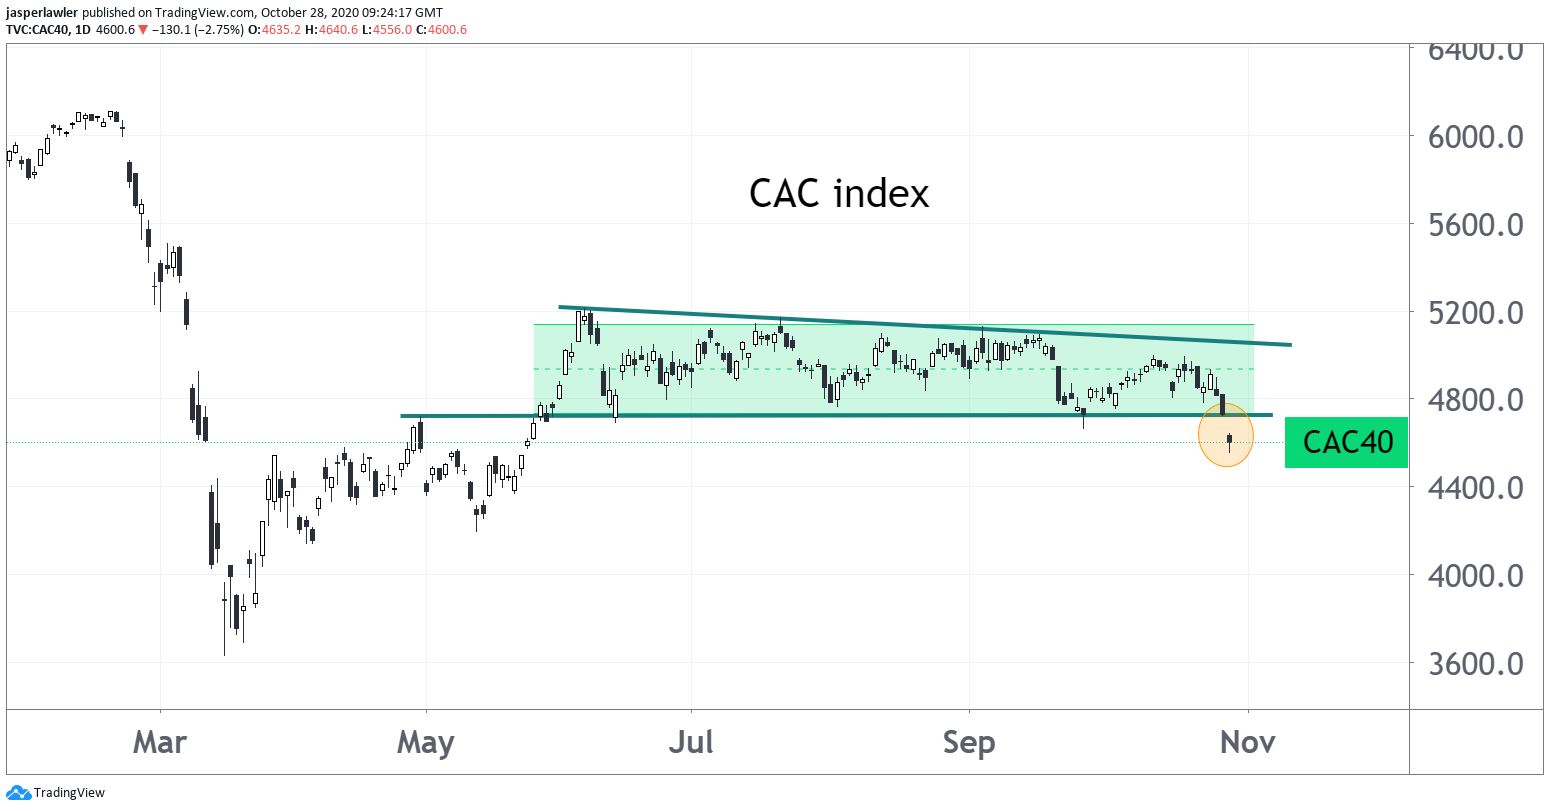 France's CAC 30 index gapping lower from 5-month price range